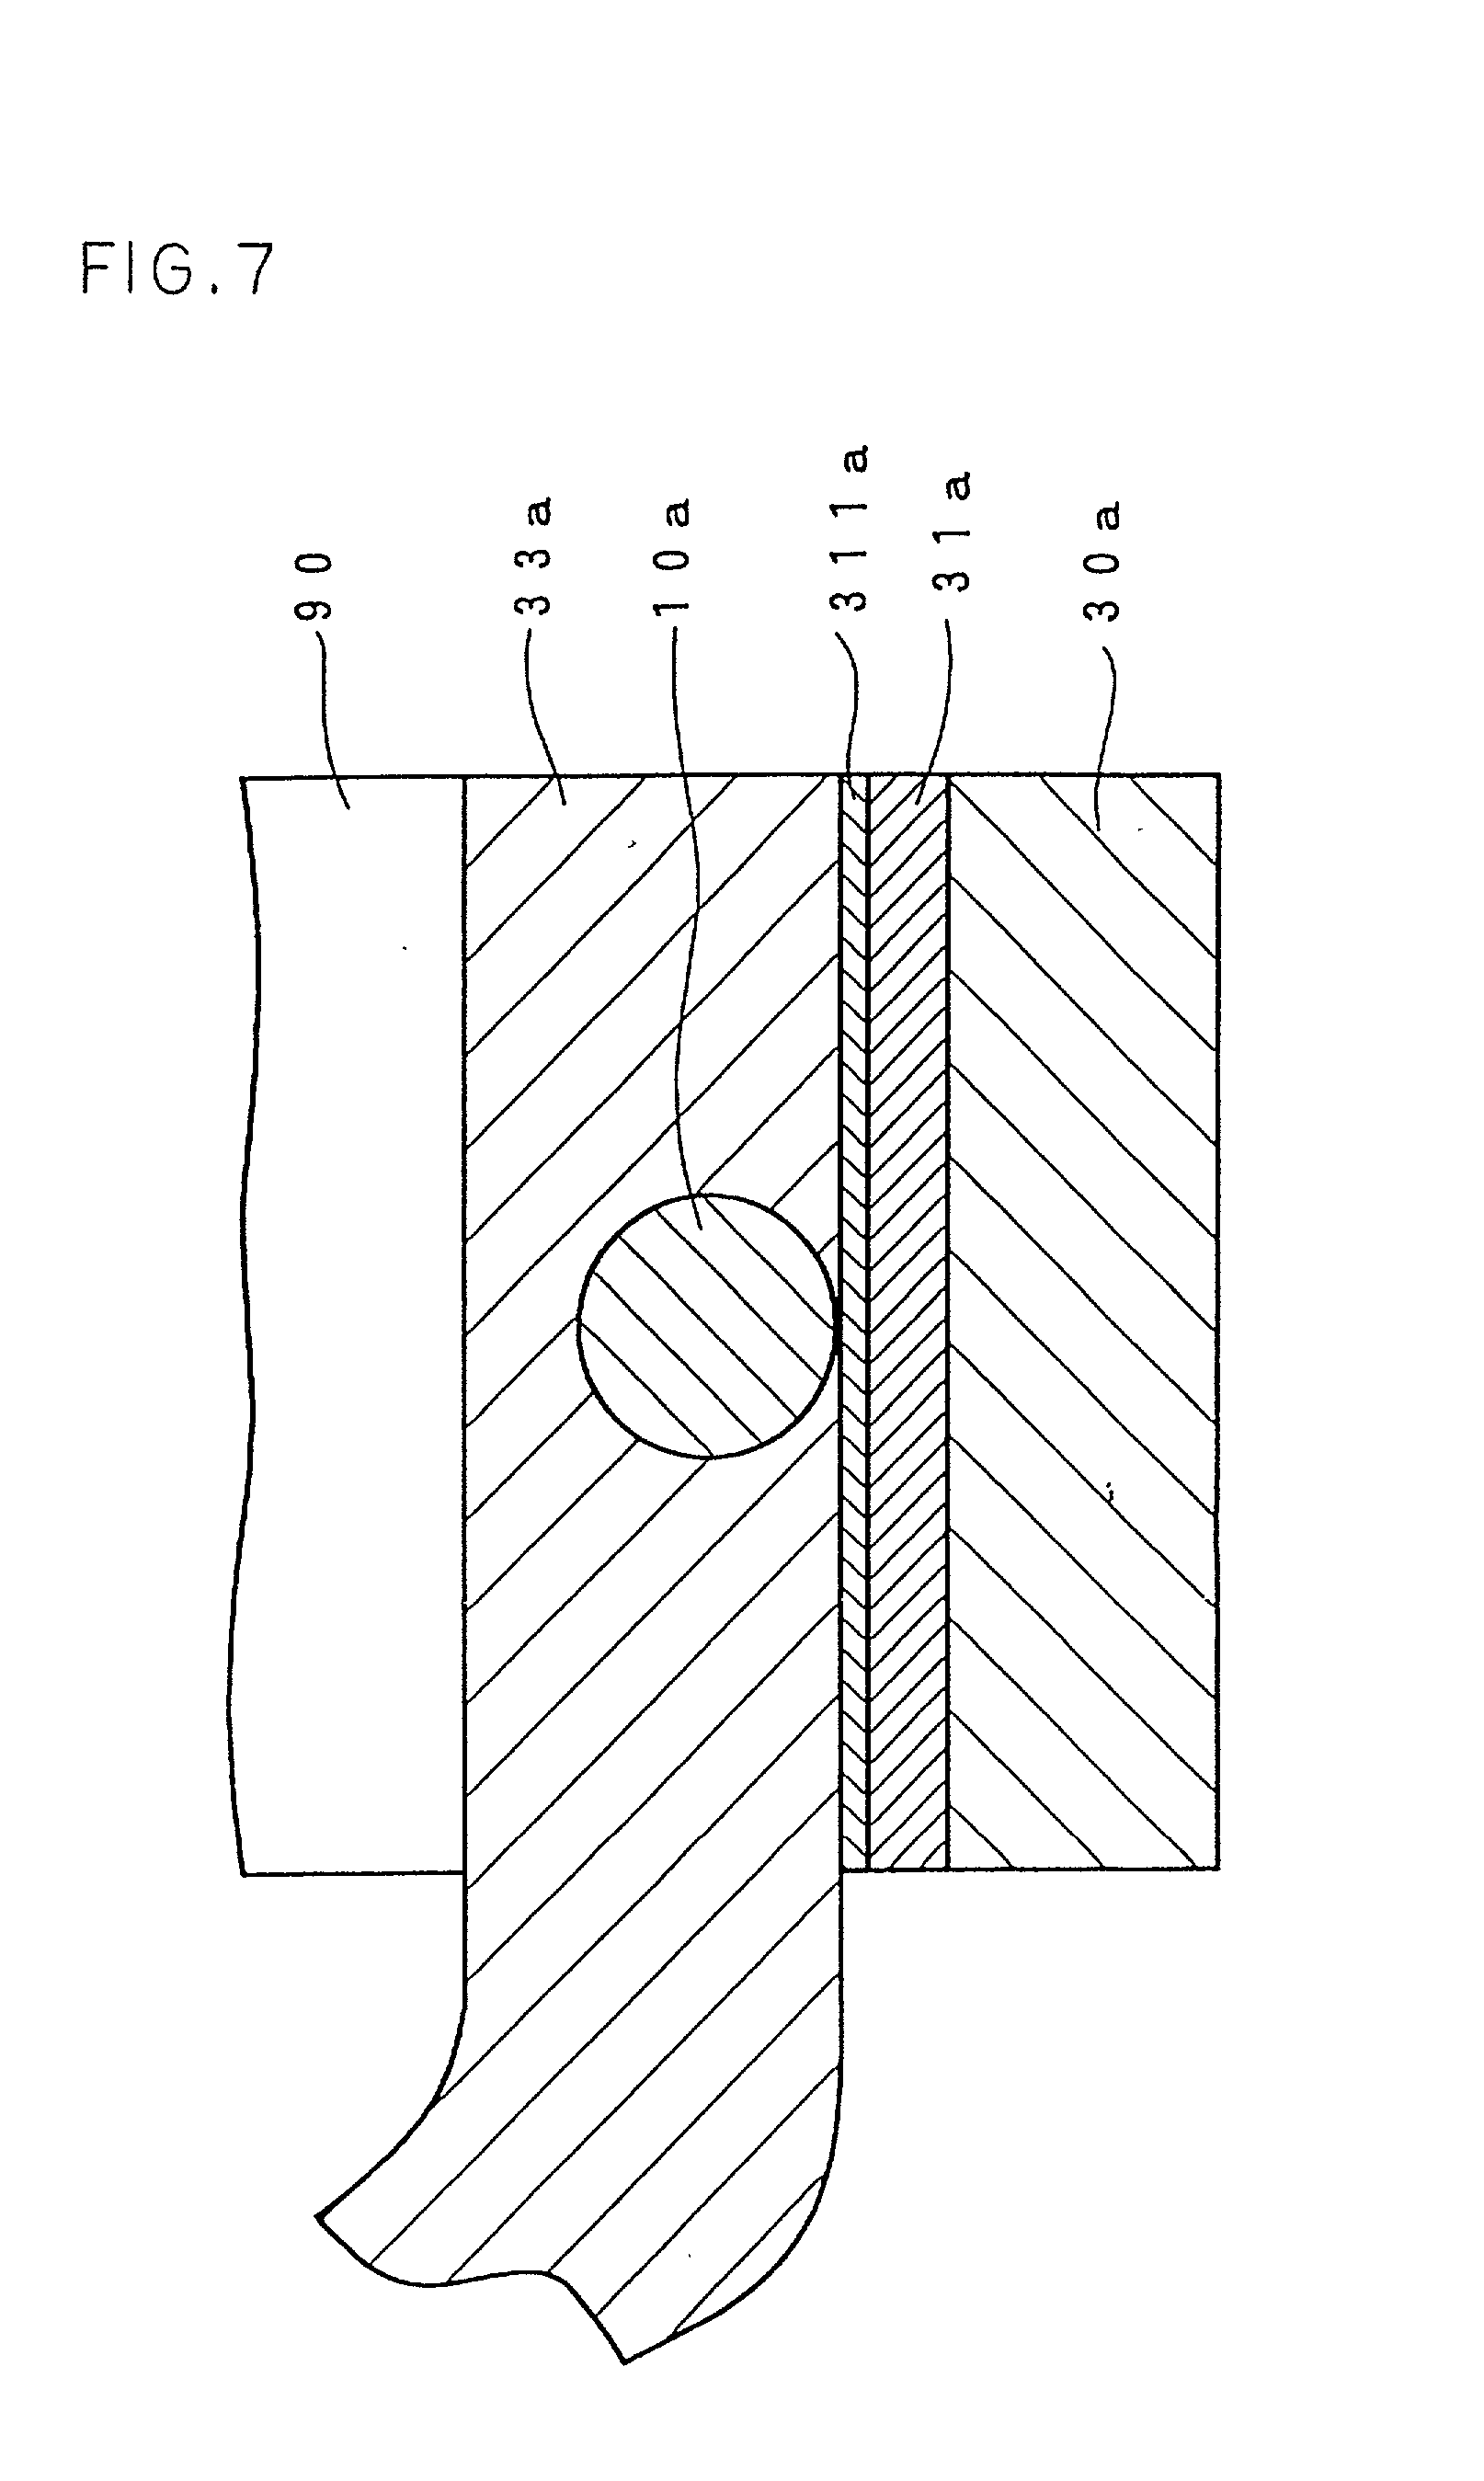 Patent Us20010030537 Magnetic Field Detection Device Google Patents Weak Signal Amplifier Circuit Diagram Composed Of Magnetosensitive Drawing